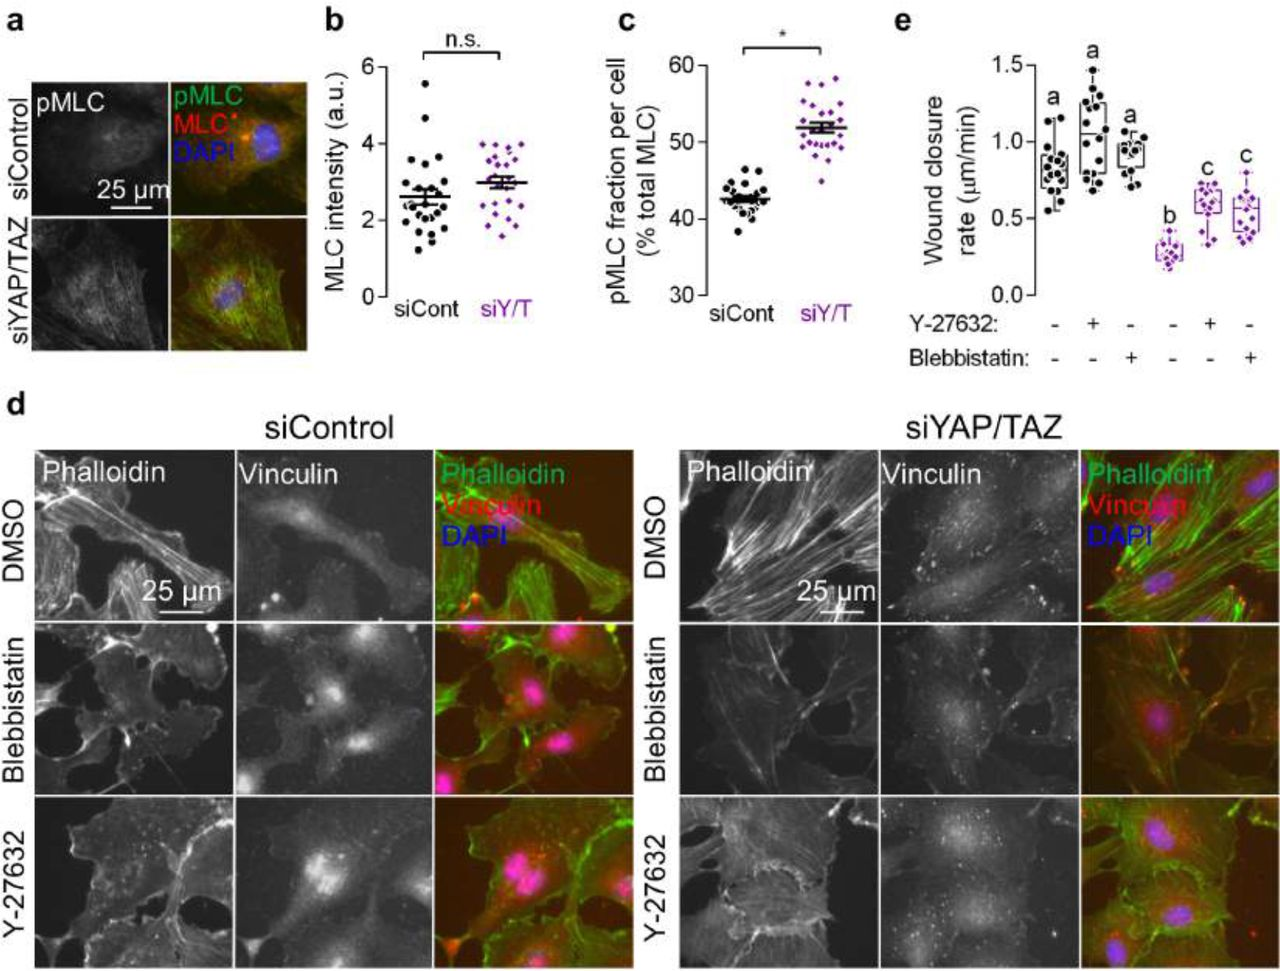 Persistent cell motility requires transcriptional feedback